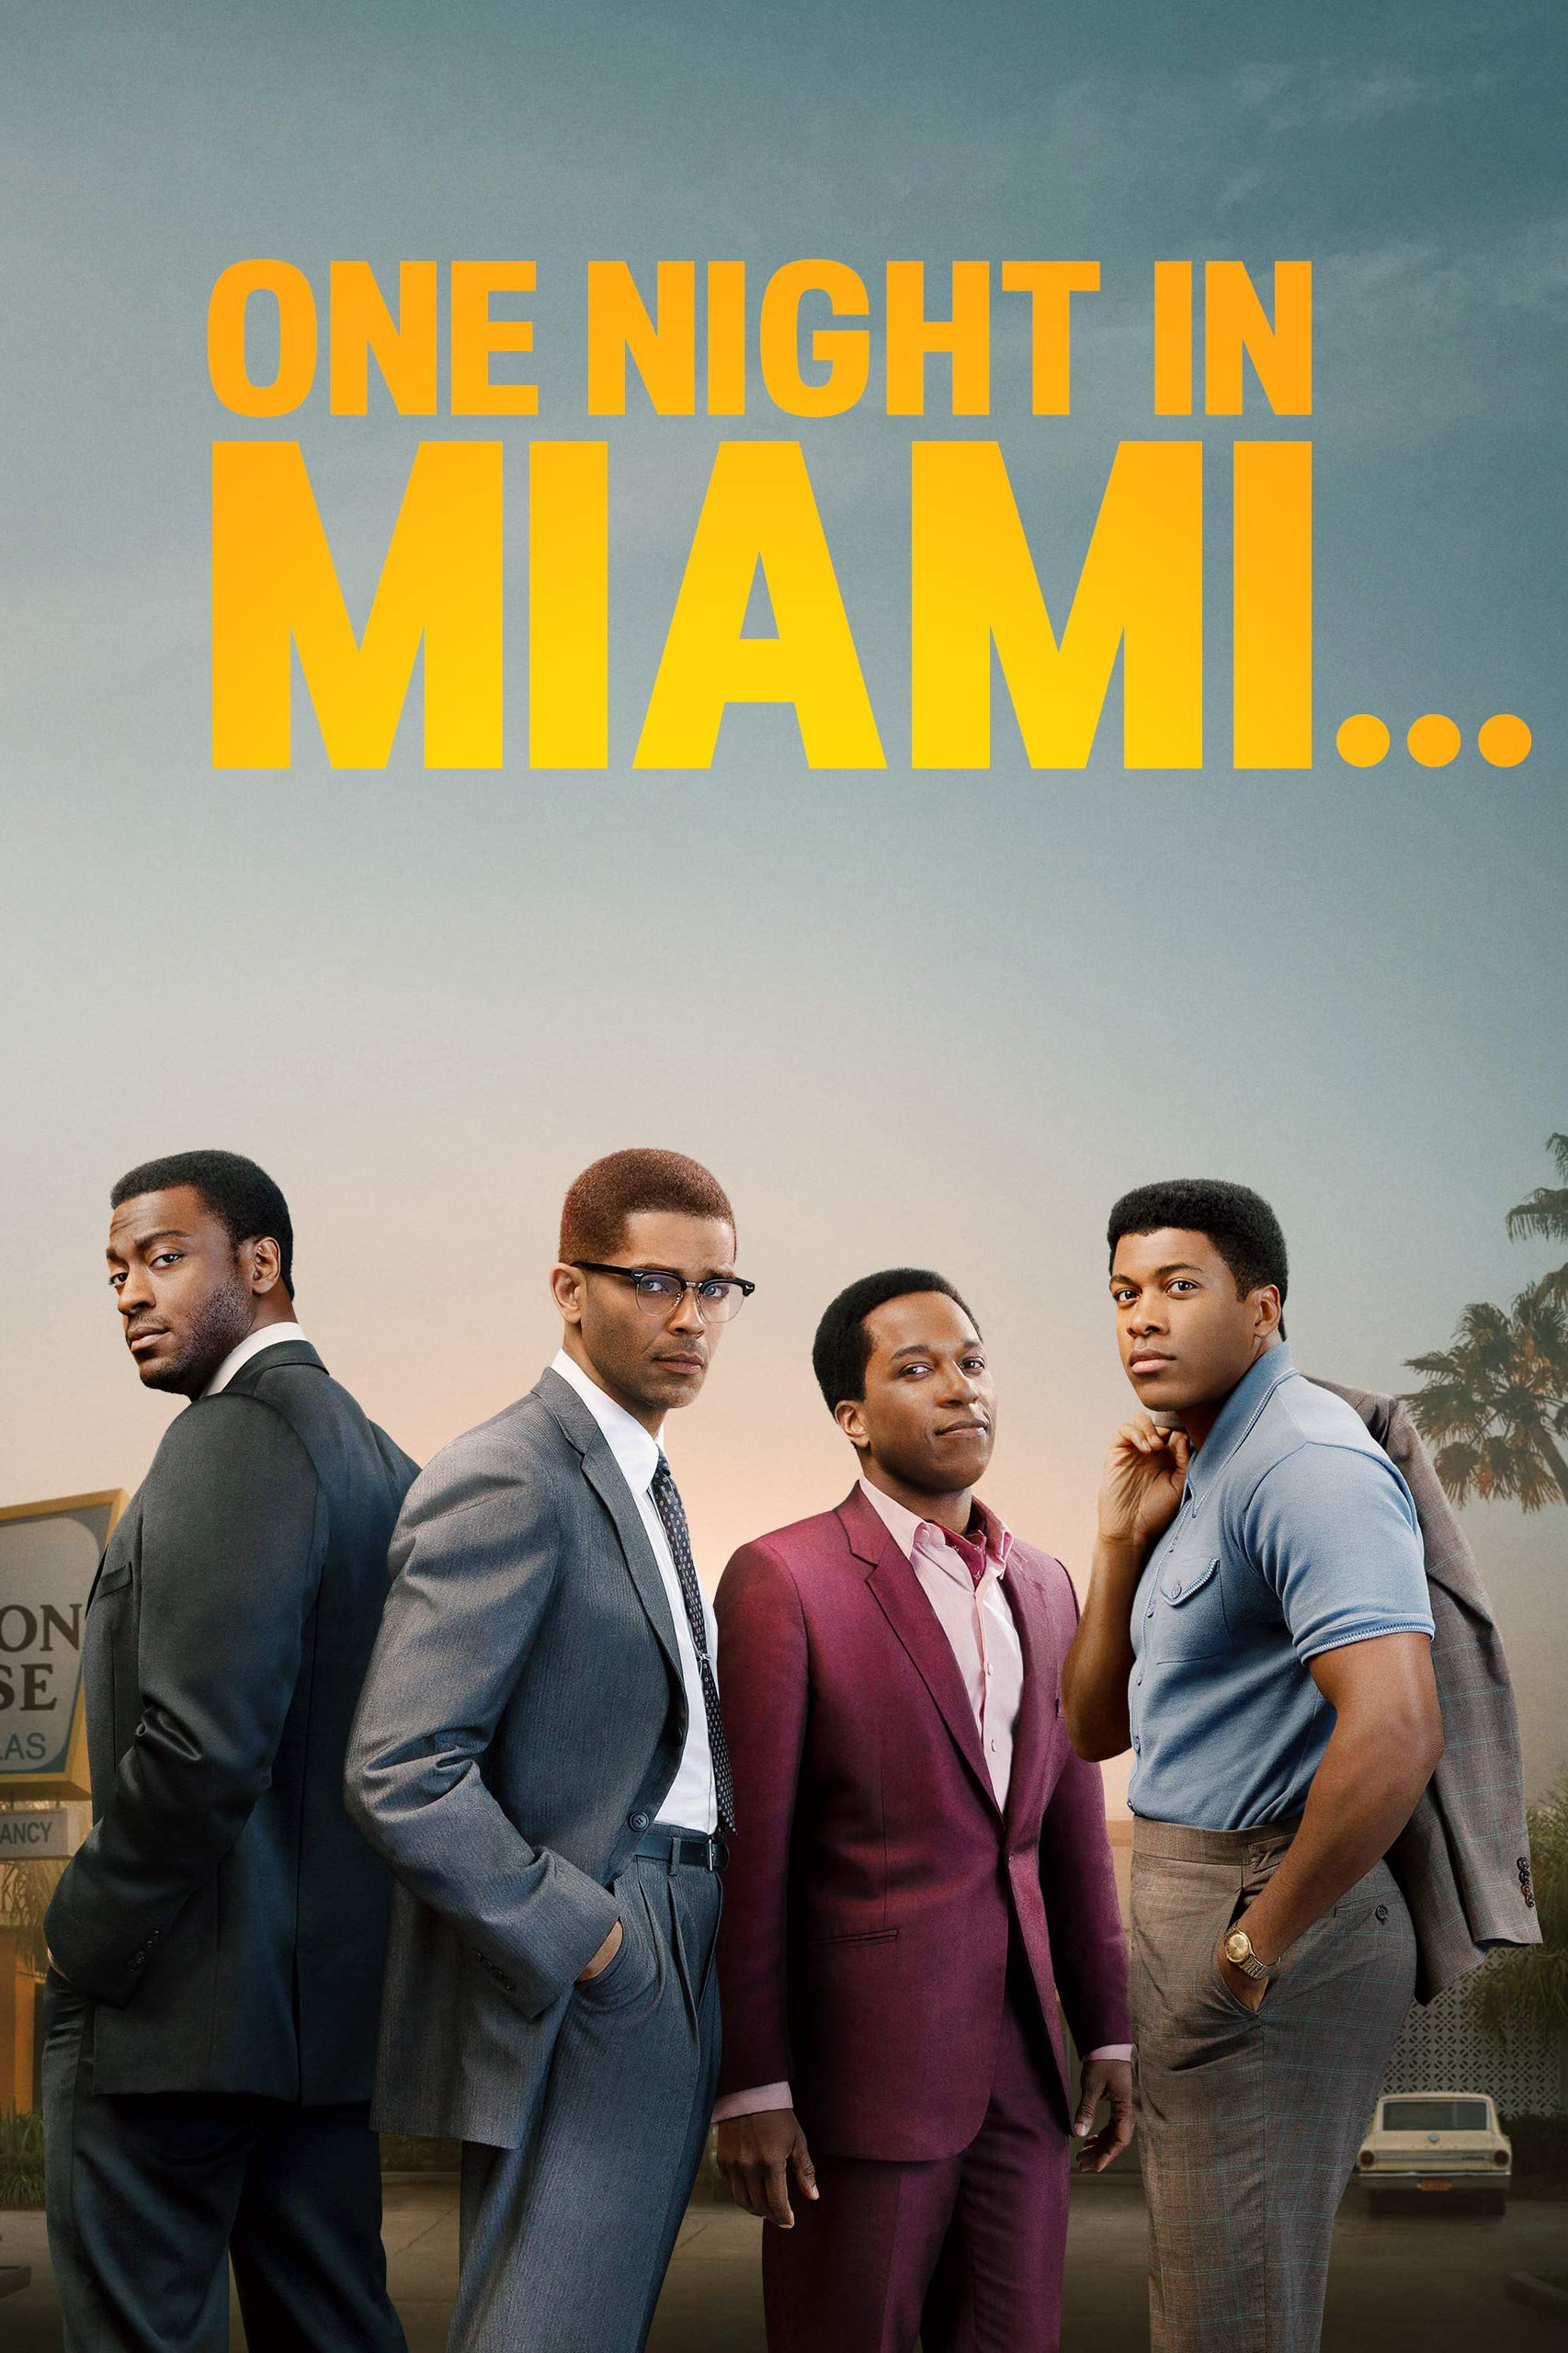 """EXCLUSIVE! — One Night in Miami """"2020 FULL MOVIE"""" - (HD 1080p) 